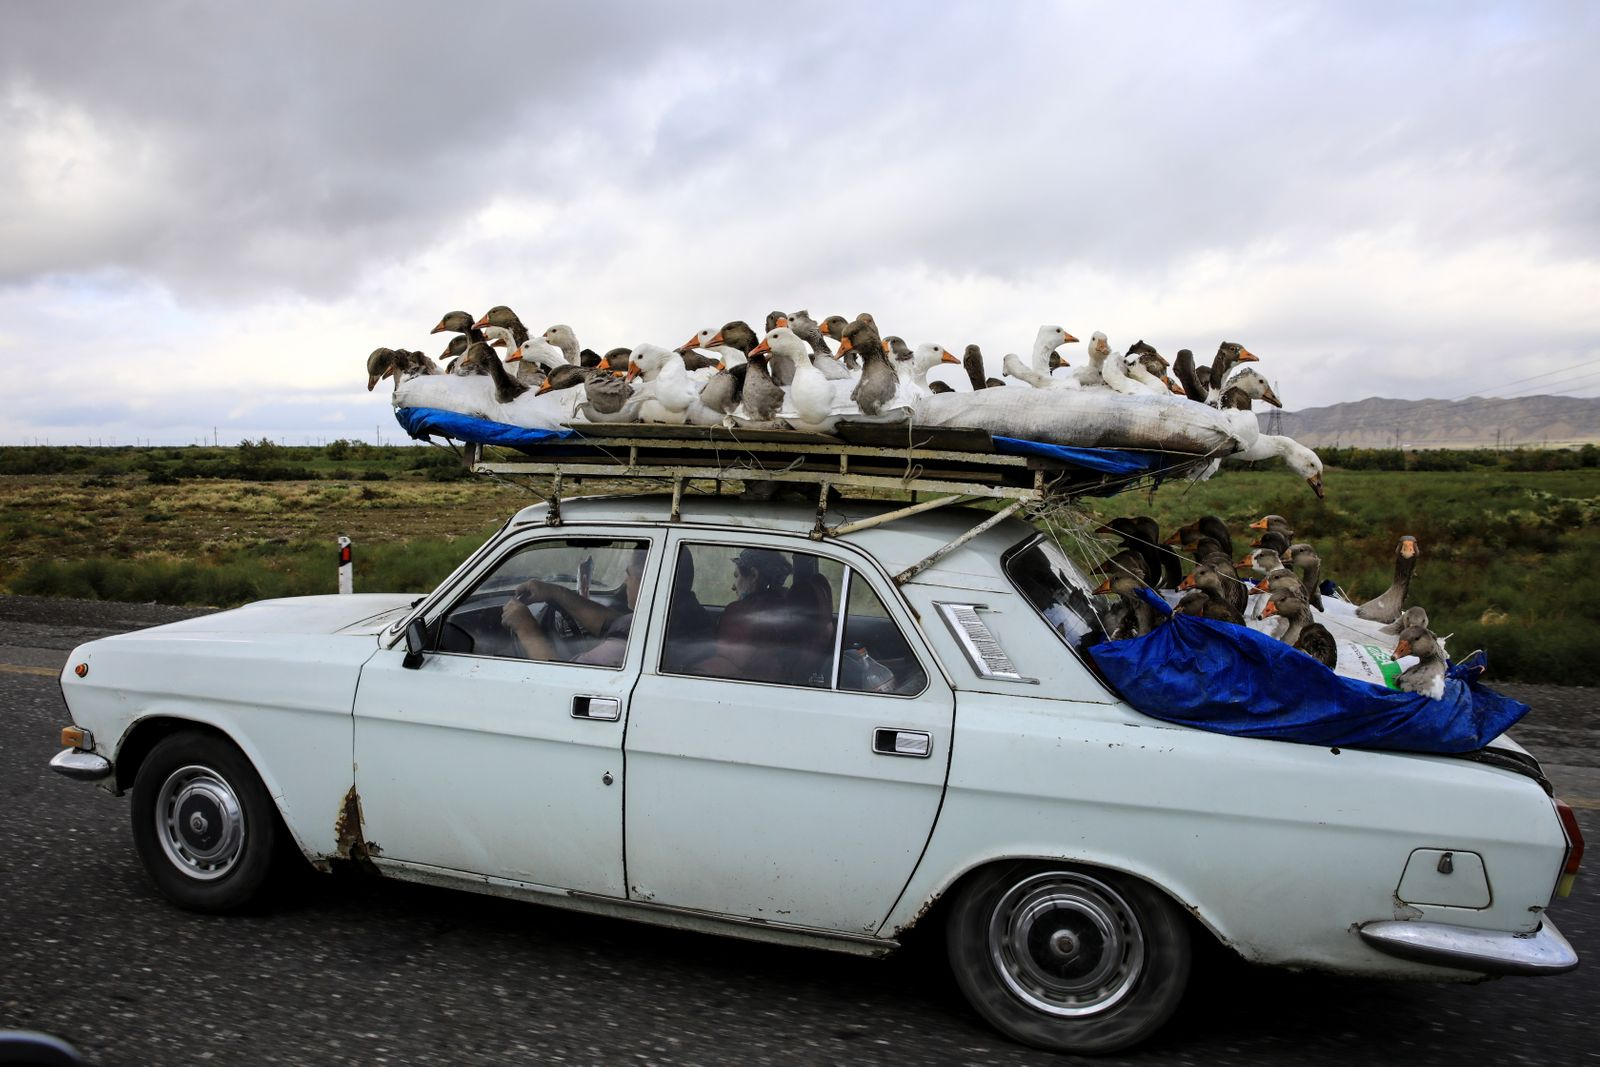 A man carries gooses on top of his car as he drives on a highway that leads to the city of Ganja